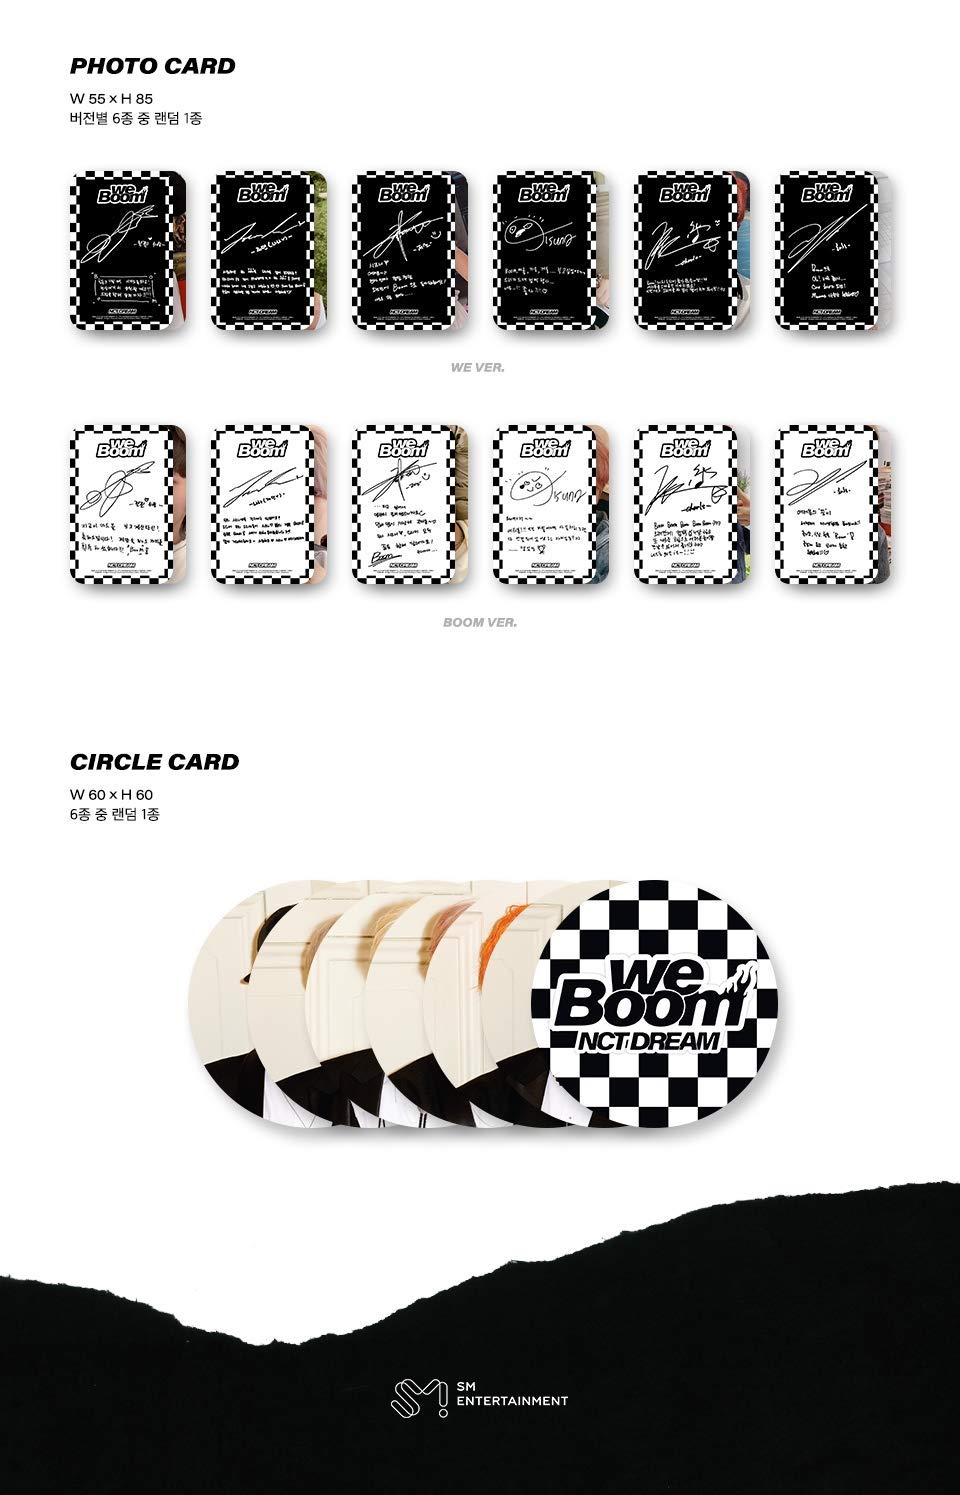 K-POP NCT Dream - WE Boom, Random version Incl. CD, Booklet, PhotoCard, BoomCard, CircleCard, Folded Poster, Extra Photocards Set by SM Entertainment